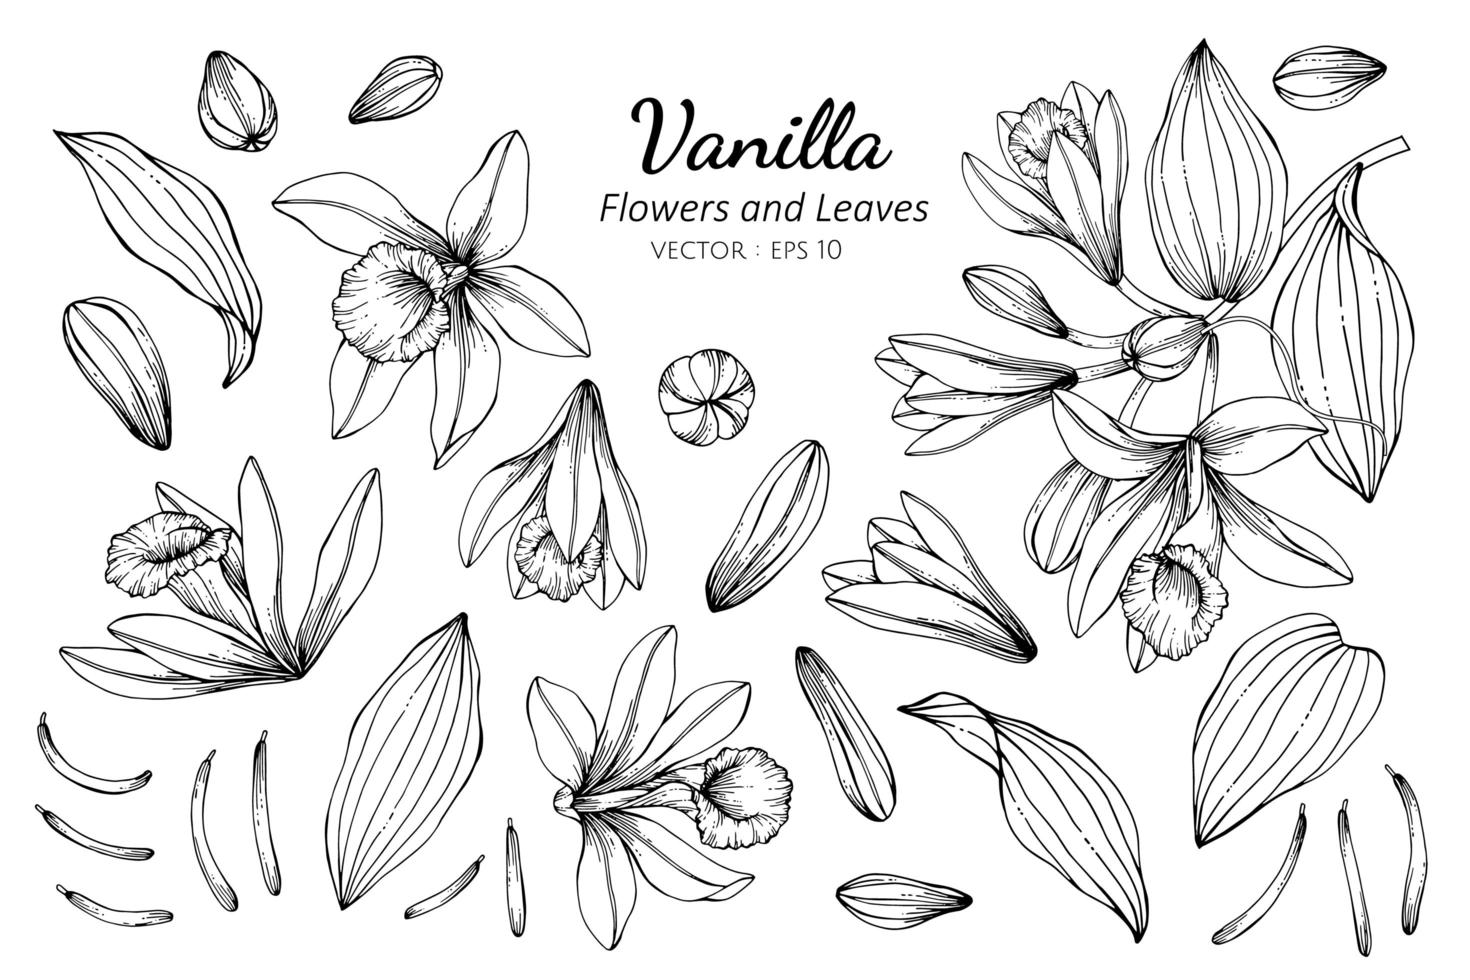 Collection of Vanilla flowers and leaves vector